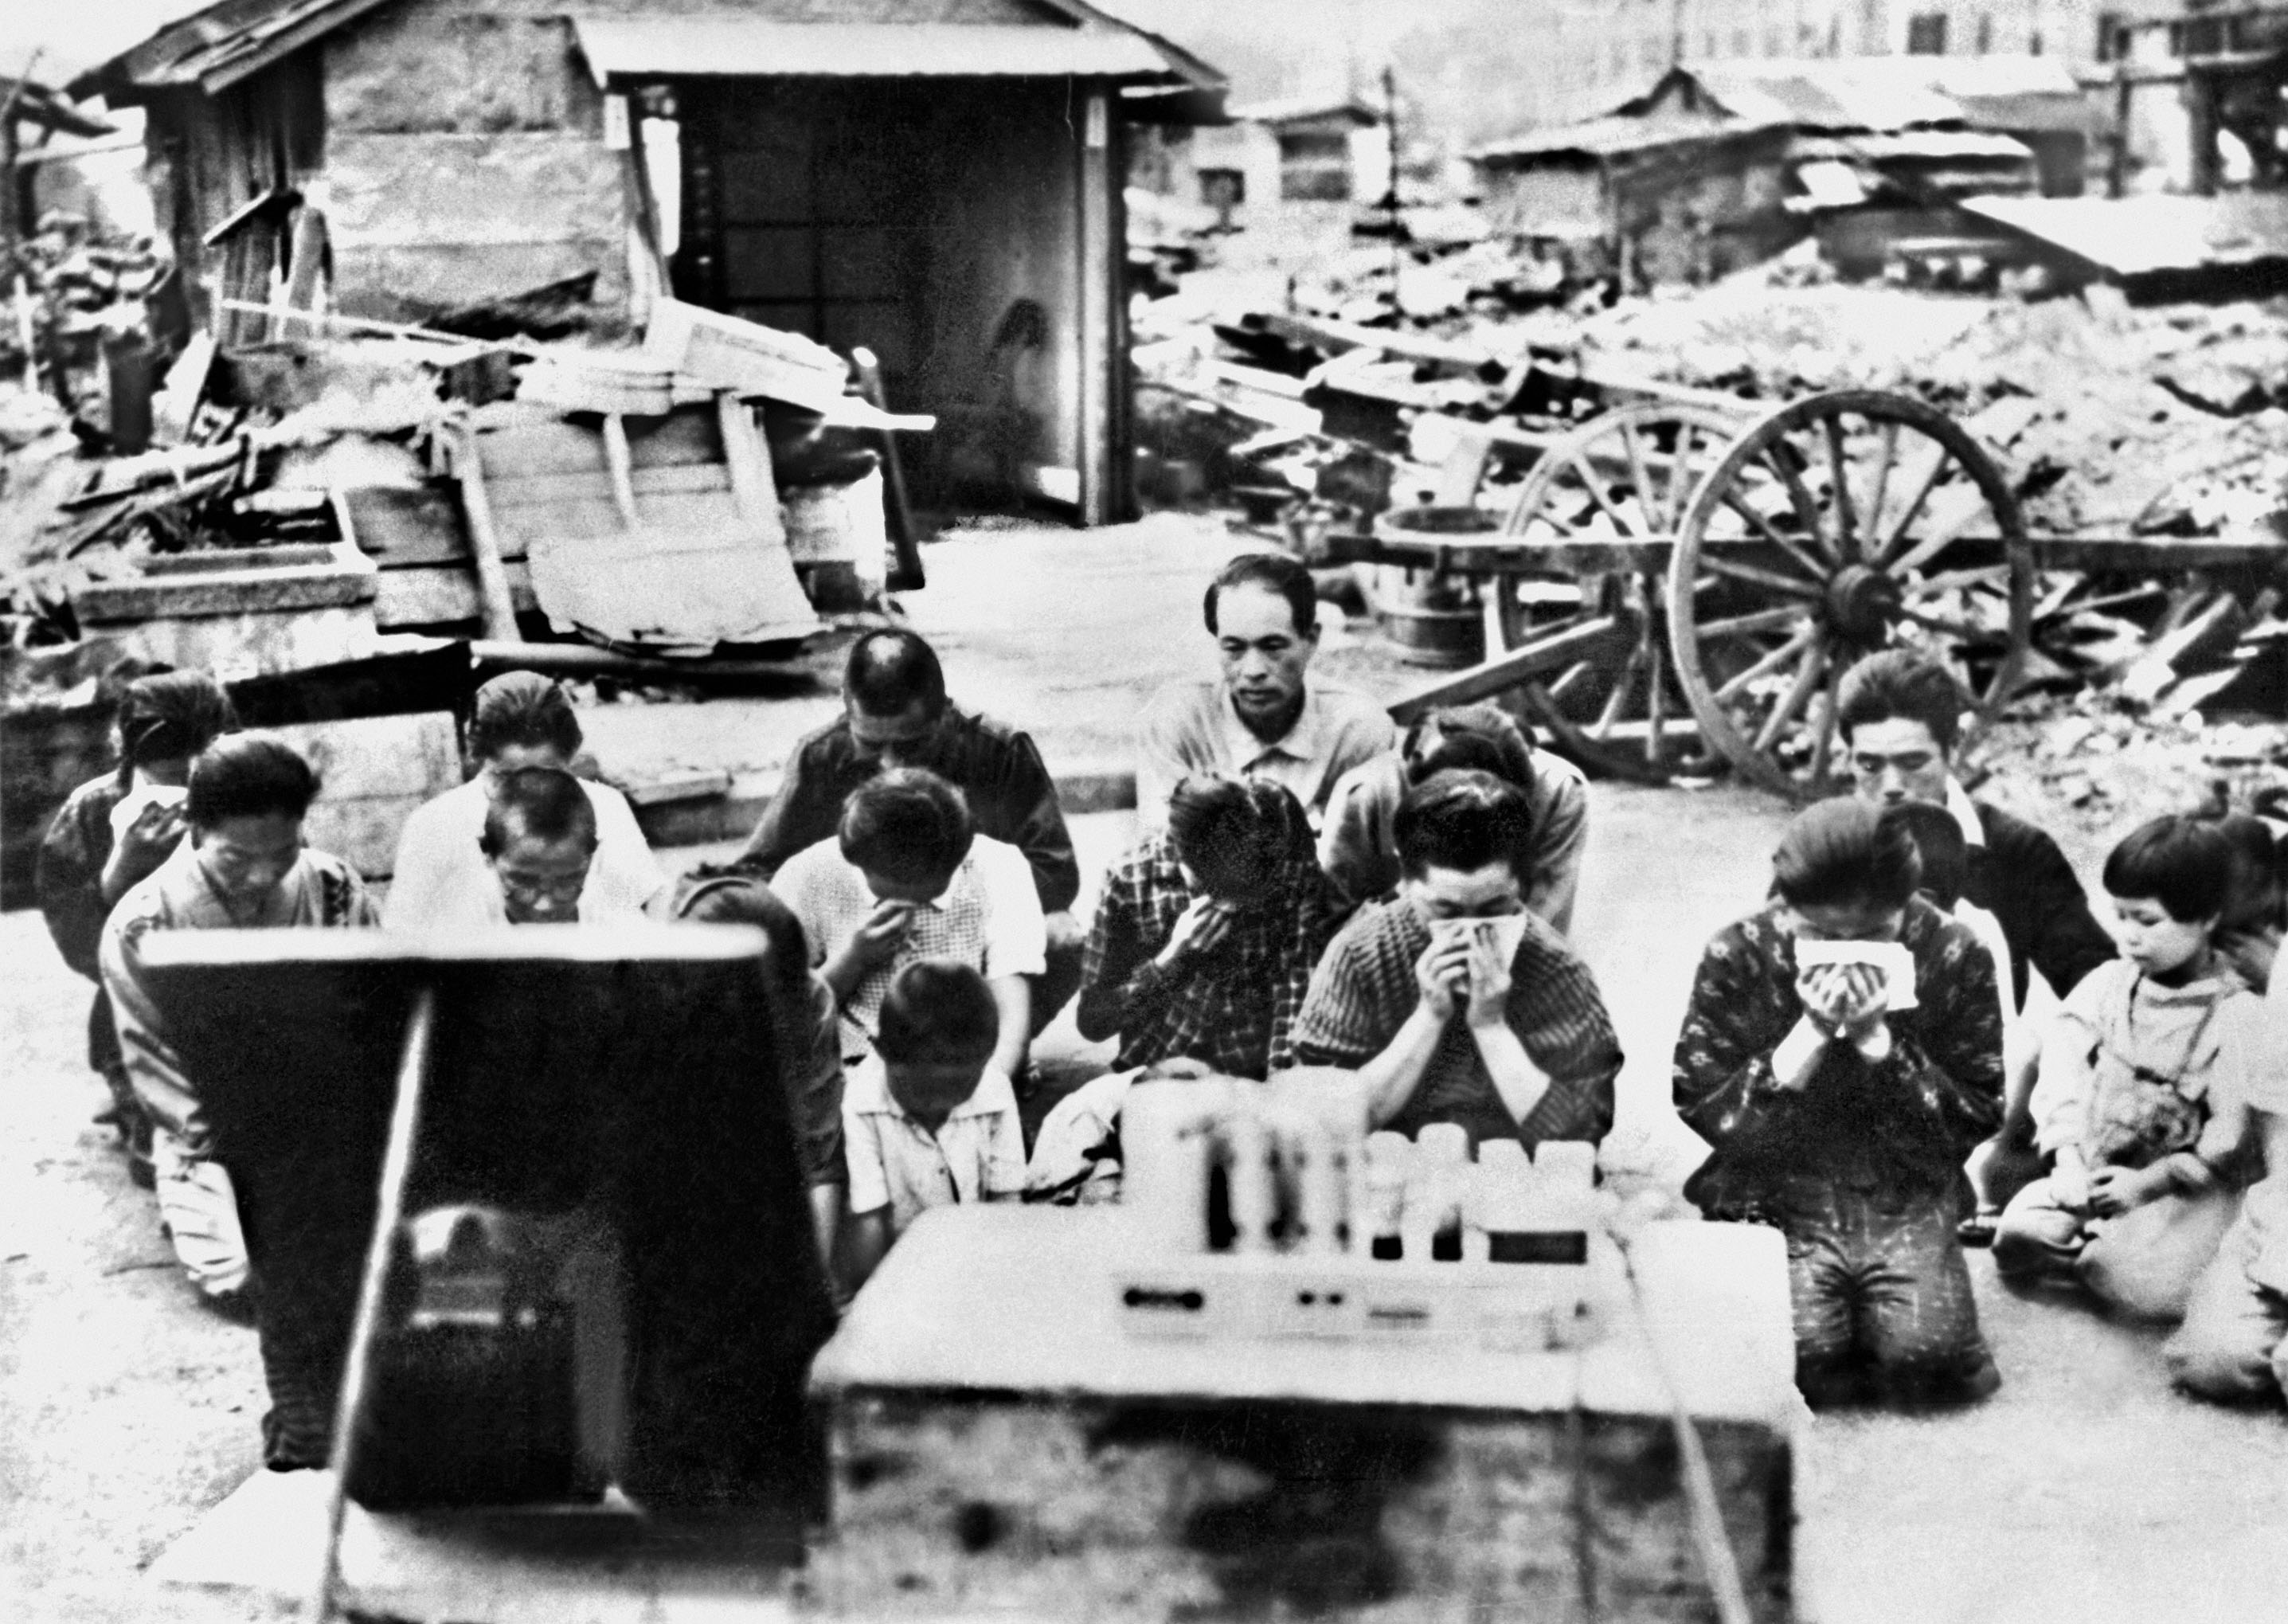 People shed tears as they kneel down and listen to Emperor Hirohito's broadcast announcing Japan's surrender on Aug. 15, 1945, in this unspecified location. | KYODO